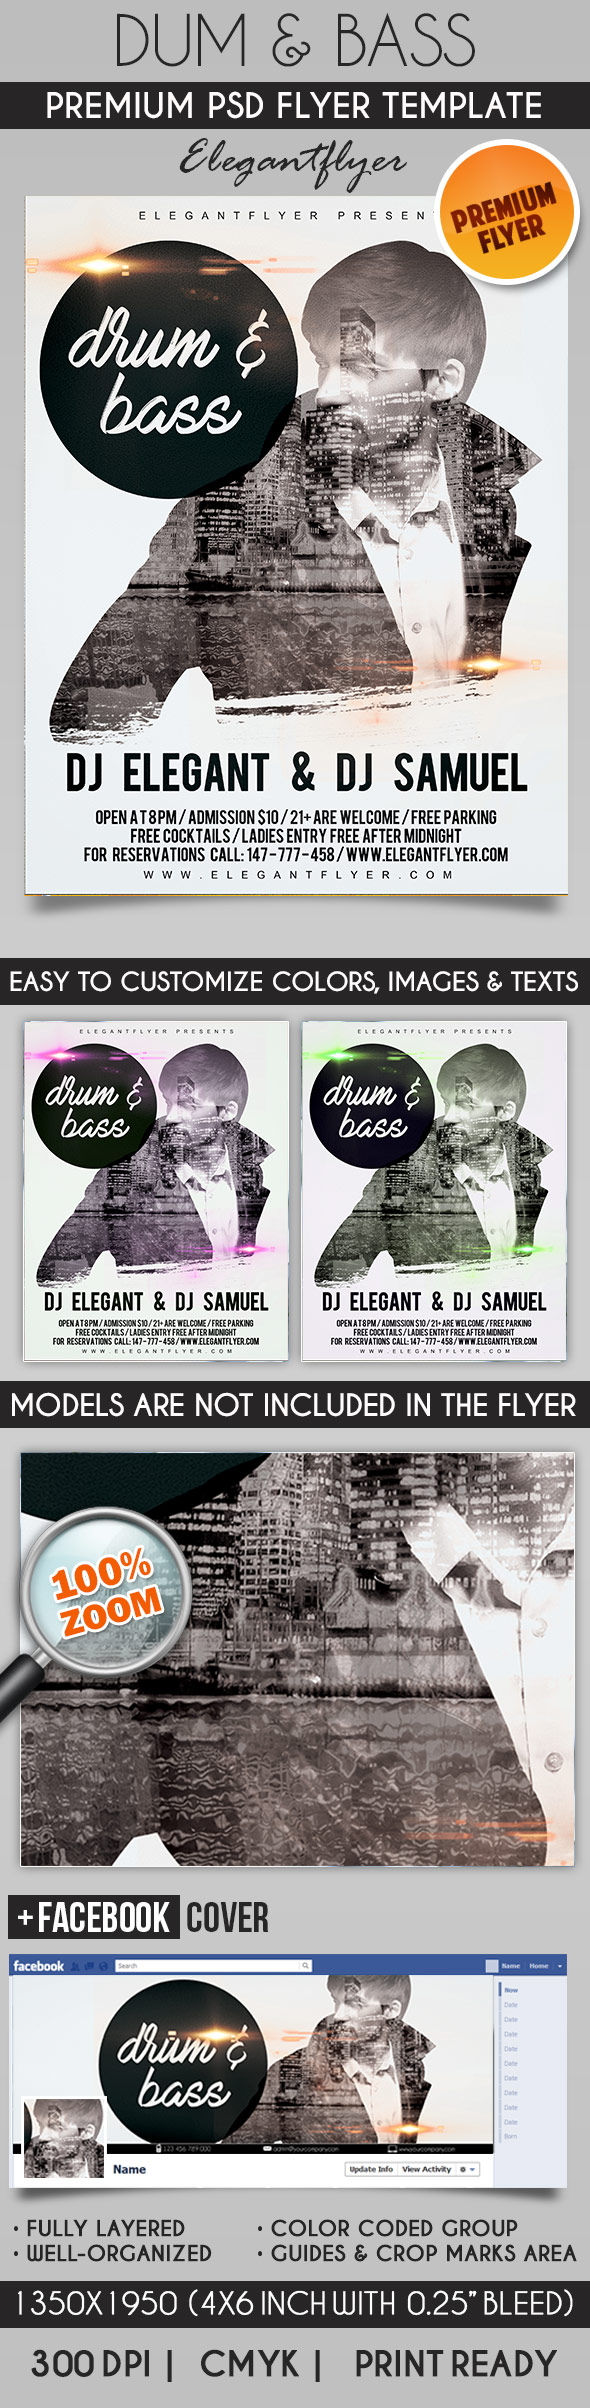 Drum & Bass – Flyer PSD Template + Facebook Cover